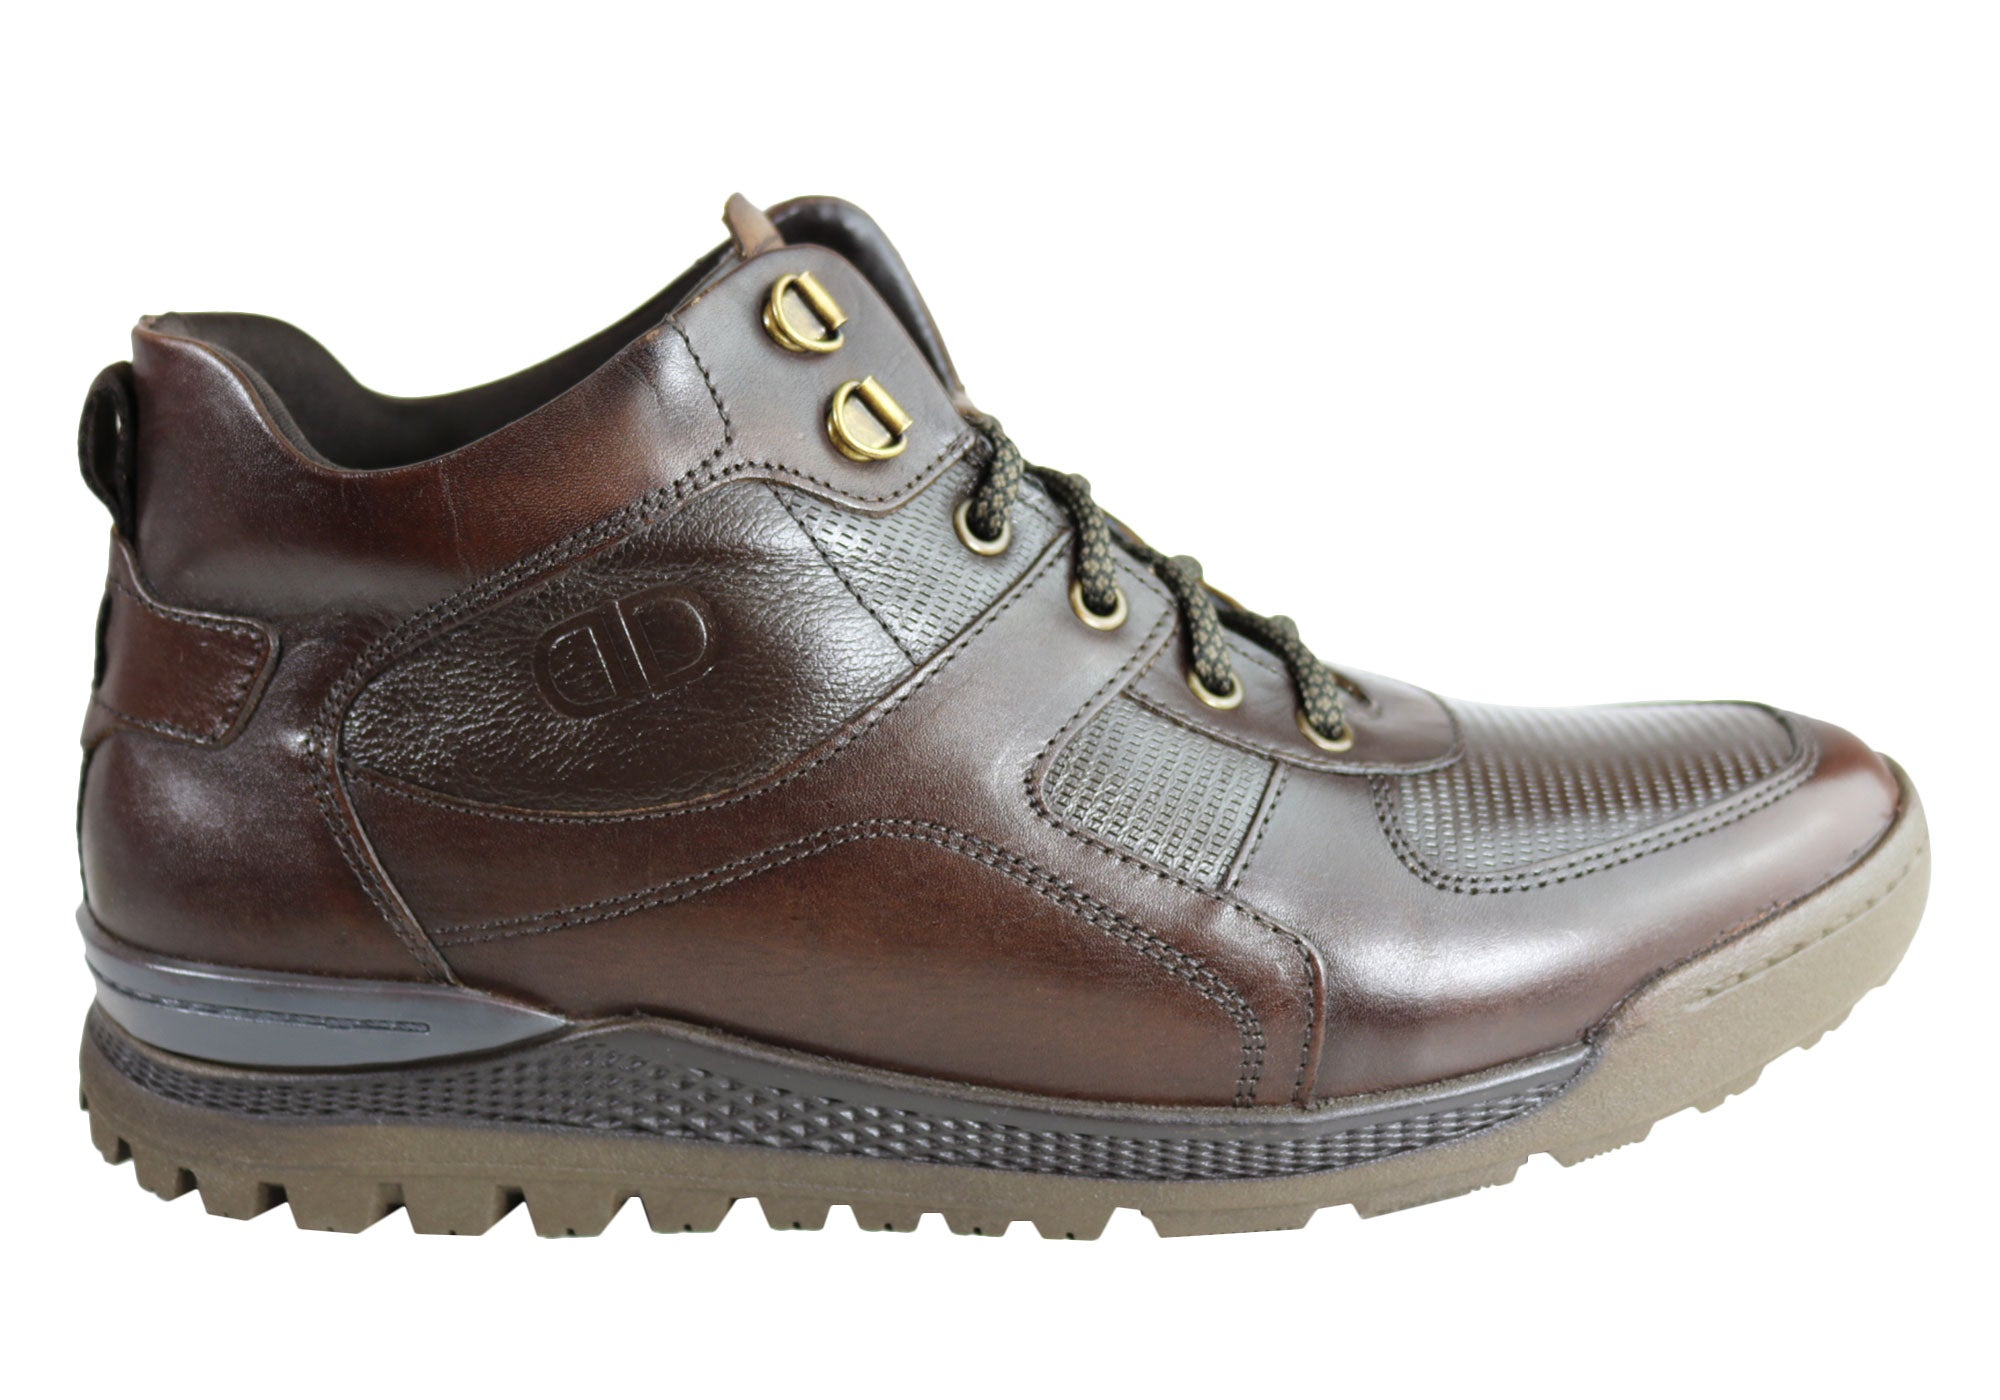 NEW-DEMOCRATA-DIEGO-MENS-LEATHER-LACE-UP-DRESS-BOOTS-MADE-IN-BRAZIL thumbnail 10